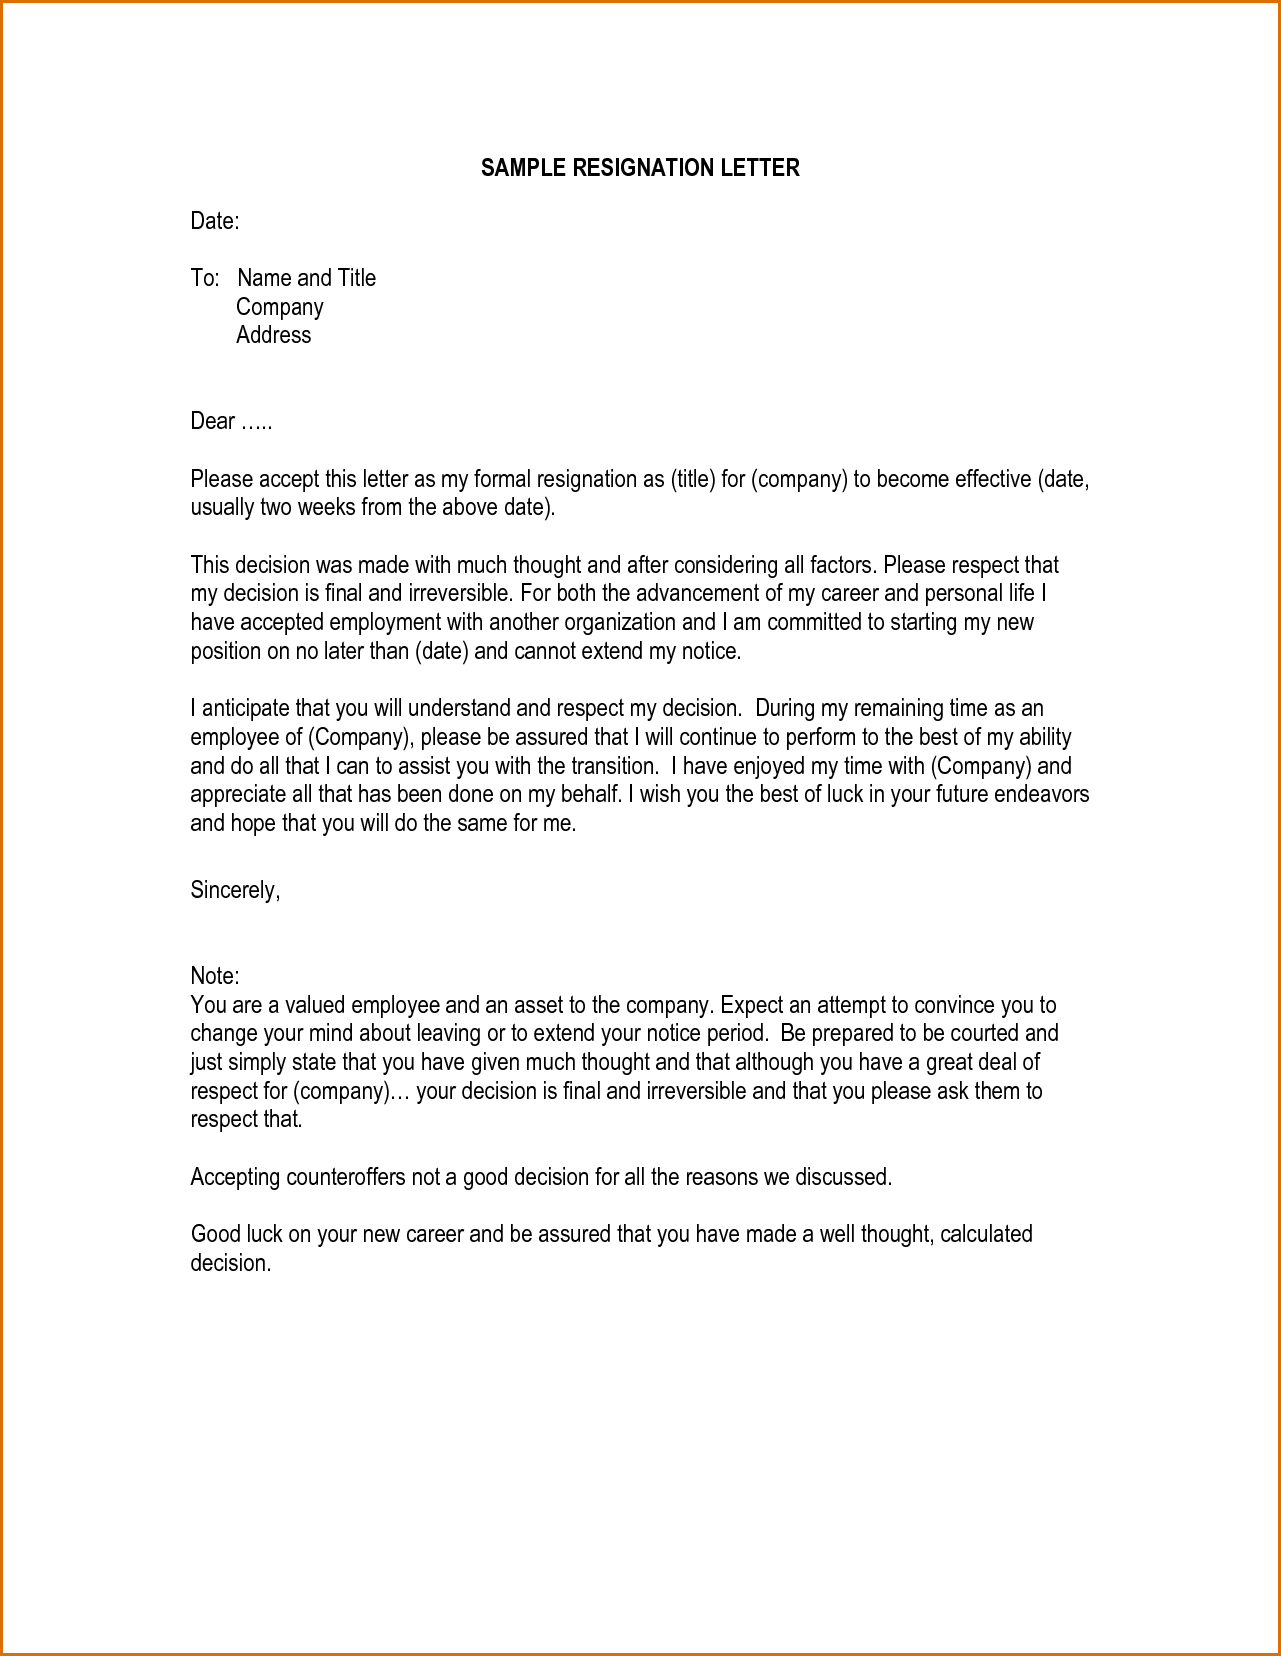 Writing A Resignation Letter Template - How Write Simple Resignation Letter Transvall Rzowxoq Best Tips for